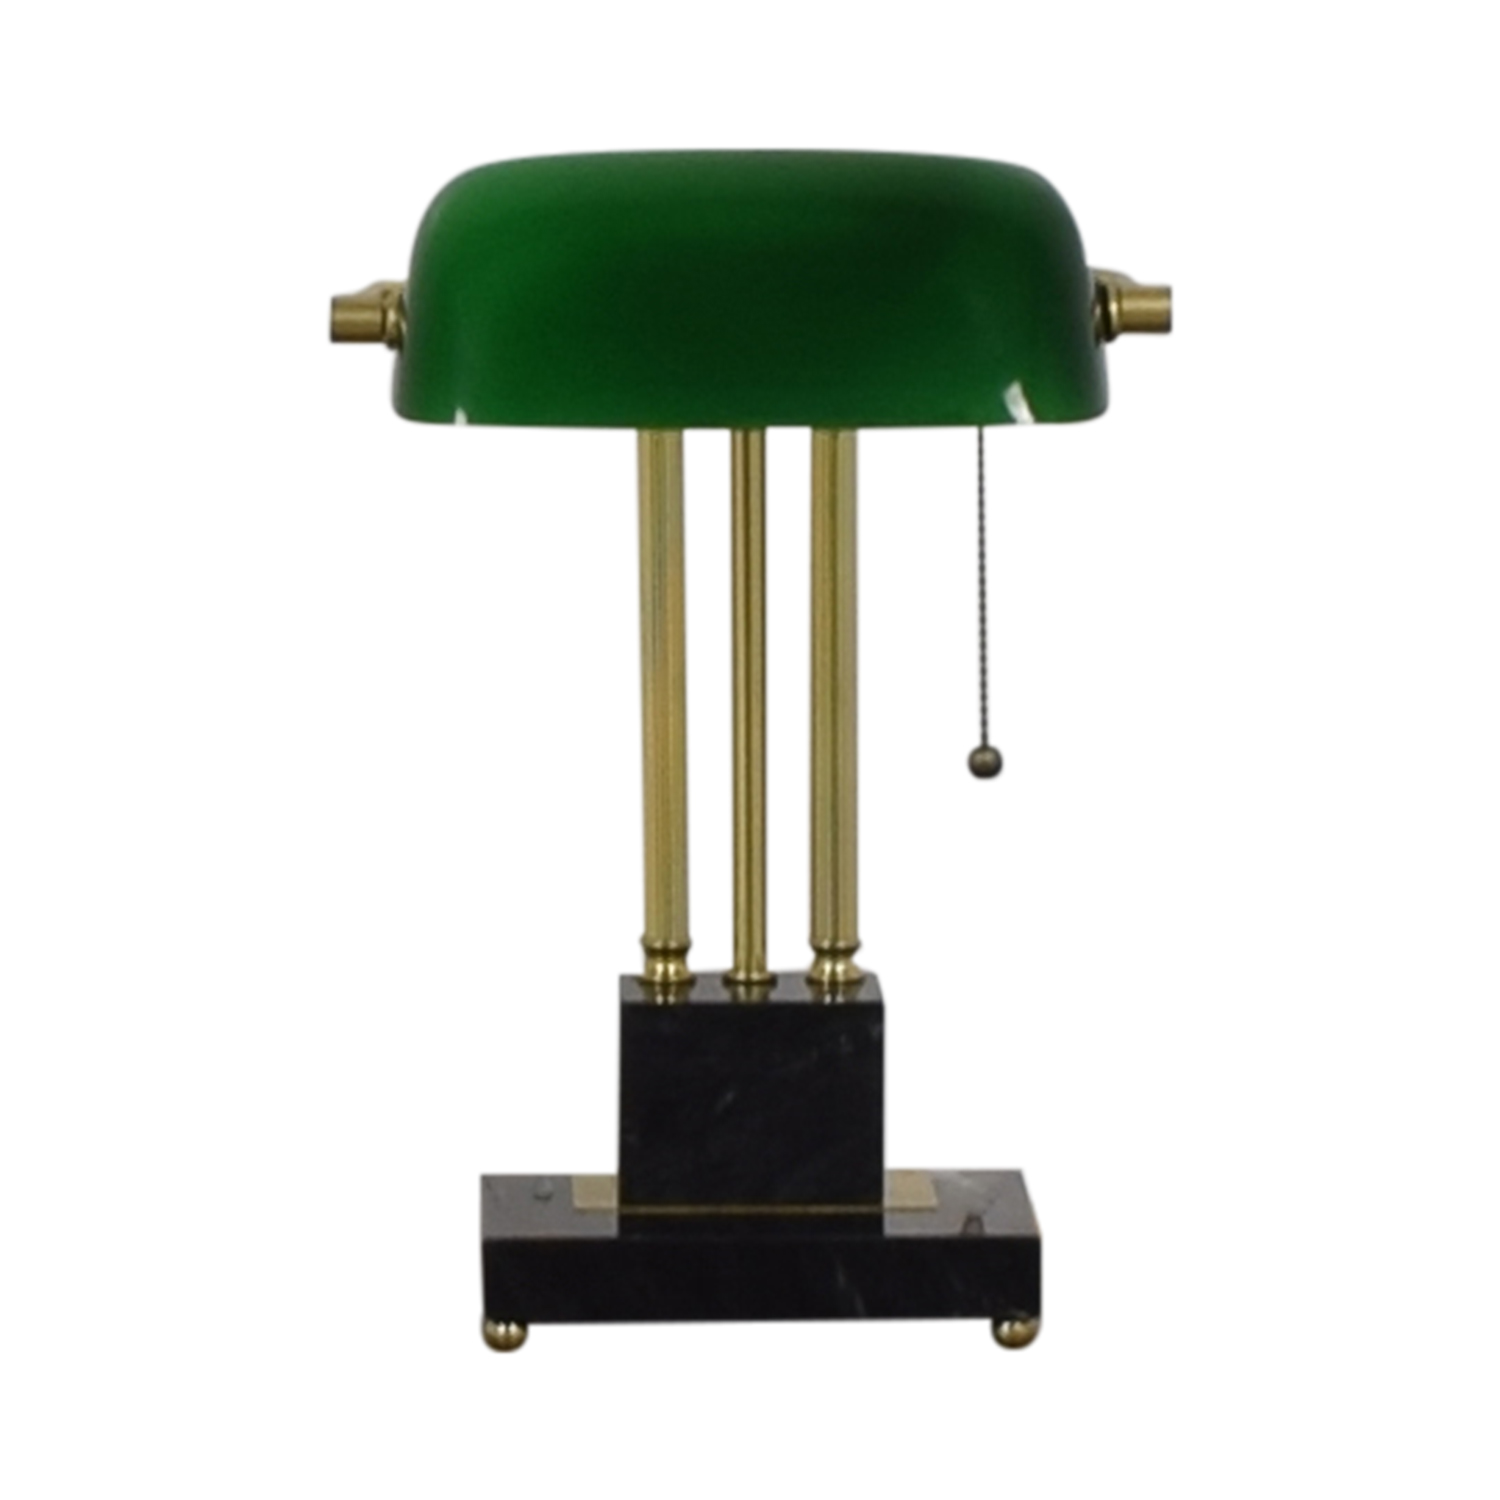 Green Banker's Lamp price